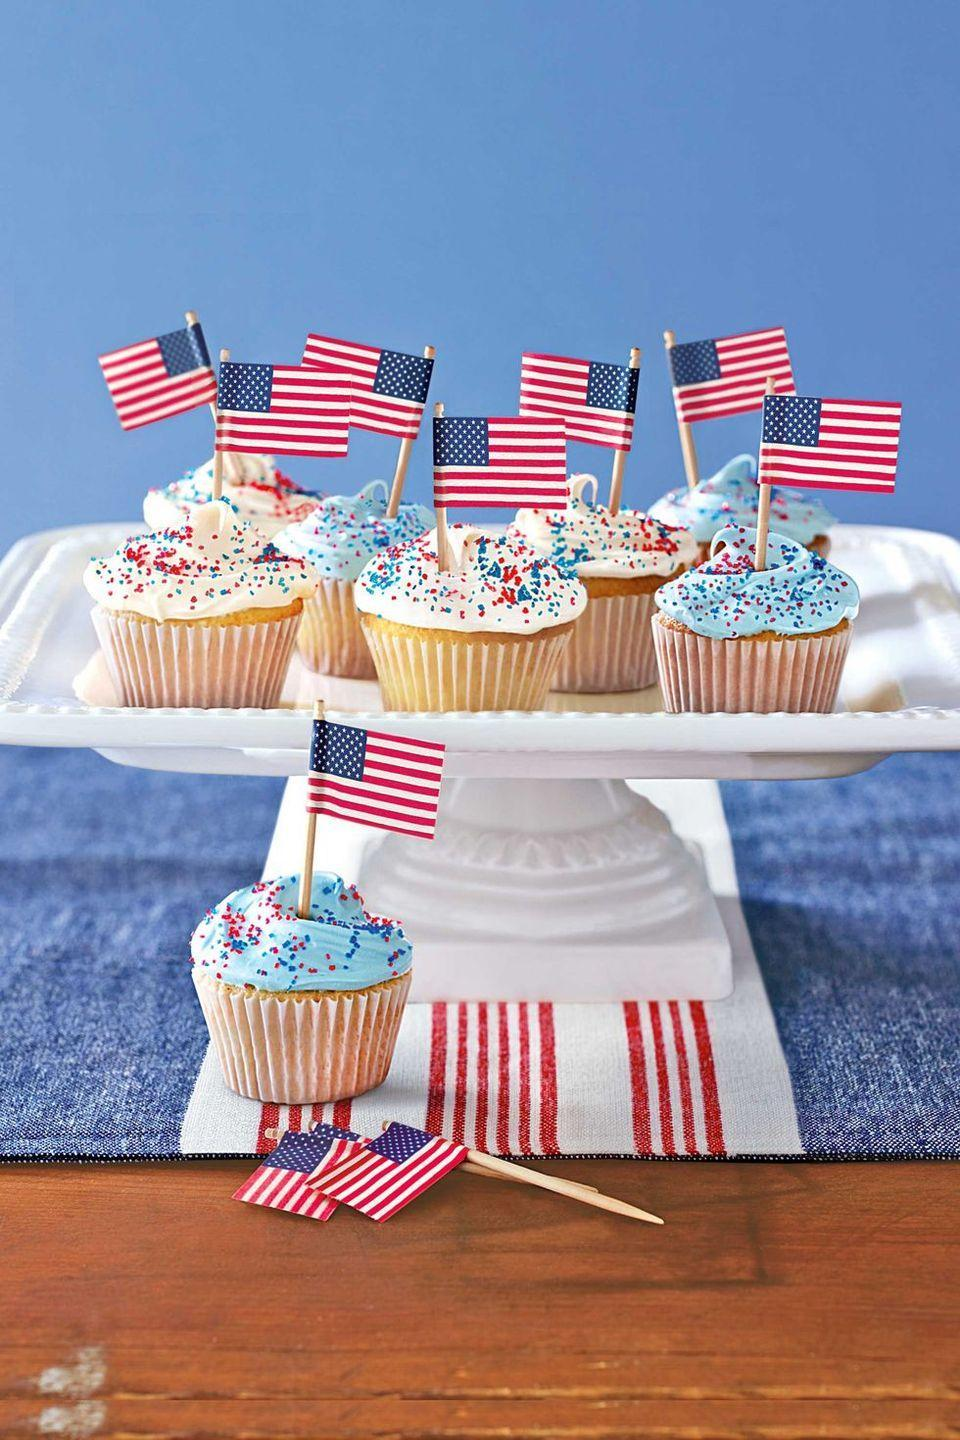 "<p>Red and blue sprinkles — plus mini American flags — add the perfect all-star touch to these <a href=""https://www.goodhousekeeping.com/food-recipes/a28565483/vanilla-cupcakes-recipe/"" rel=""nofollow noopener"" target=""_blank"" data-ylk=""slk:classic vanilla cupcakes"" class=""link rapid-noclick-resp"">classic vanilla cupcakes</a>.</p><p><em><a href=""https://www.countryliving.com/food-drinks/recipes/a28340/patriotic-cupcakes-121077/"" rel=""nofollow noopener"" target=""_blank"" data-ylk=""slk:Get the recipe from Country Living »"" class=""link rapid-noclick-resp"">Get the recipe from Country Living »</a></em> </p>"